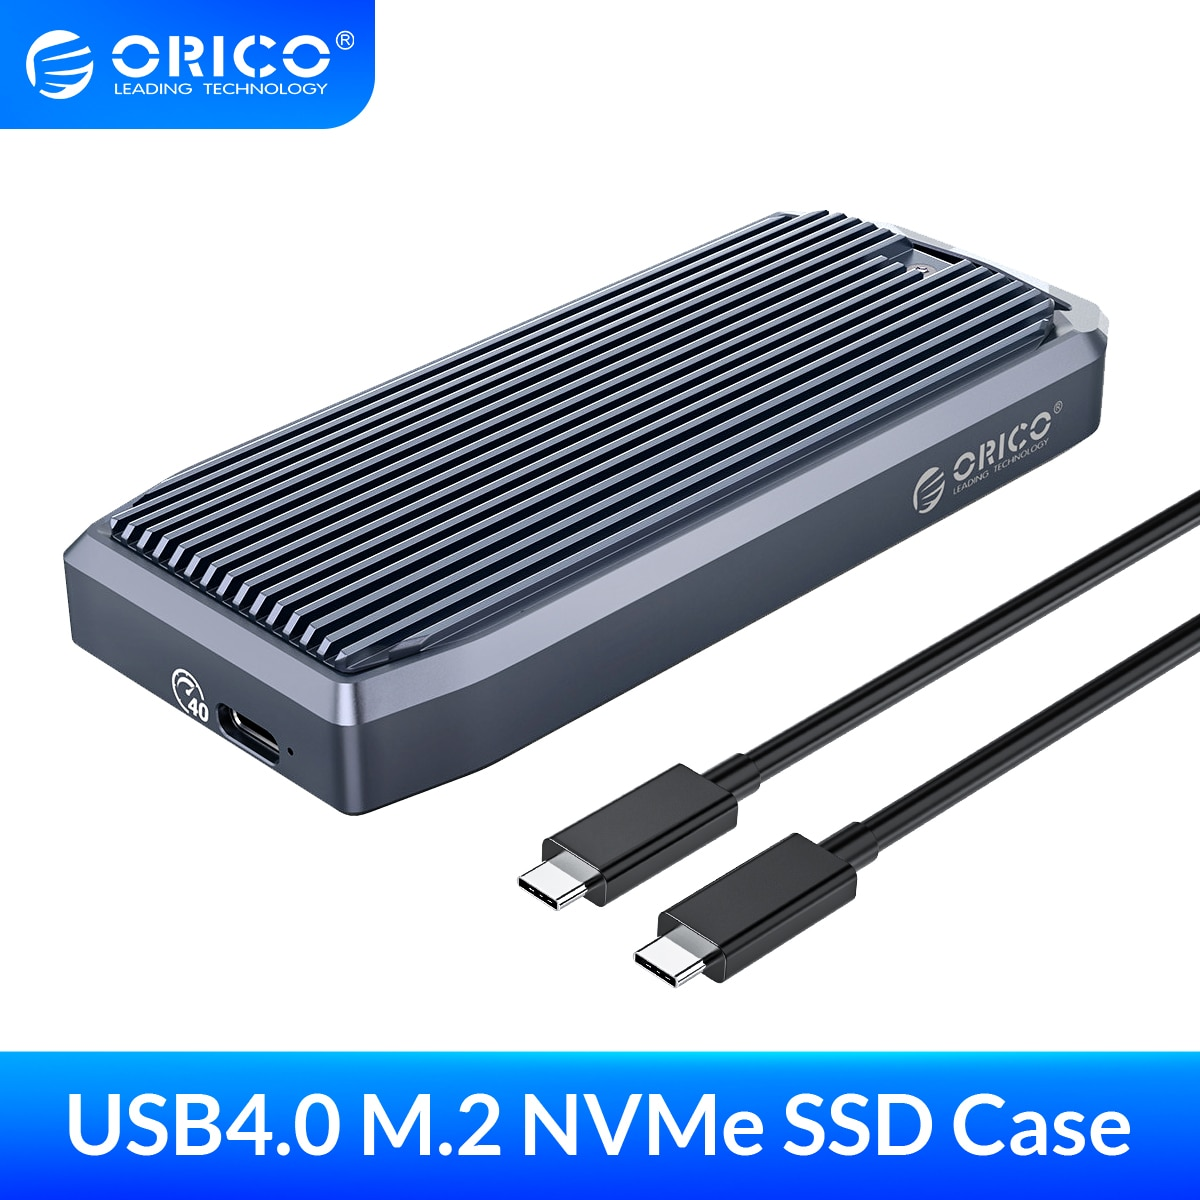 ORICO LSDT M2 SSD Case 40Gbps NVME Enclosure M.2 to USB Type C 4.0 SSD Adapter for NVME PCIE M Key SSD Disk Box M.2 SSD Case